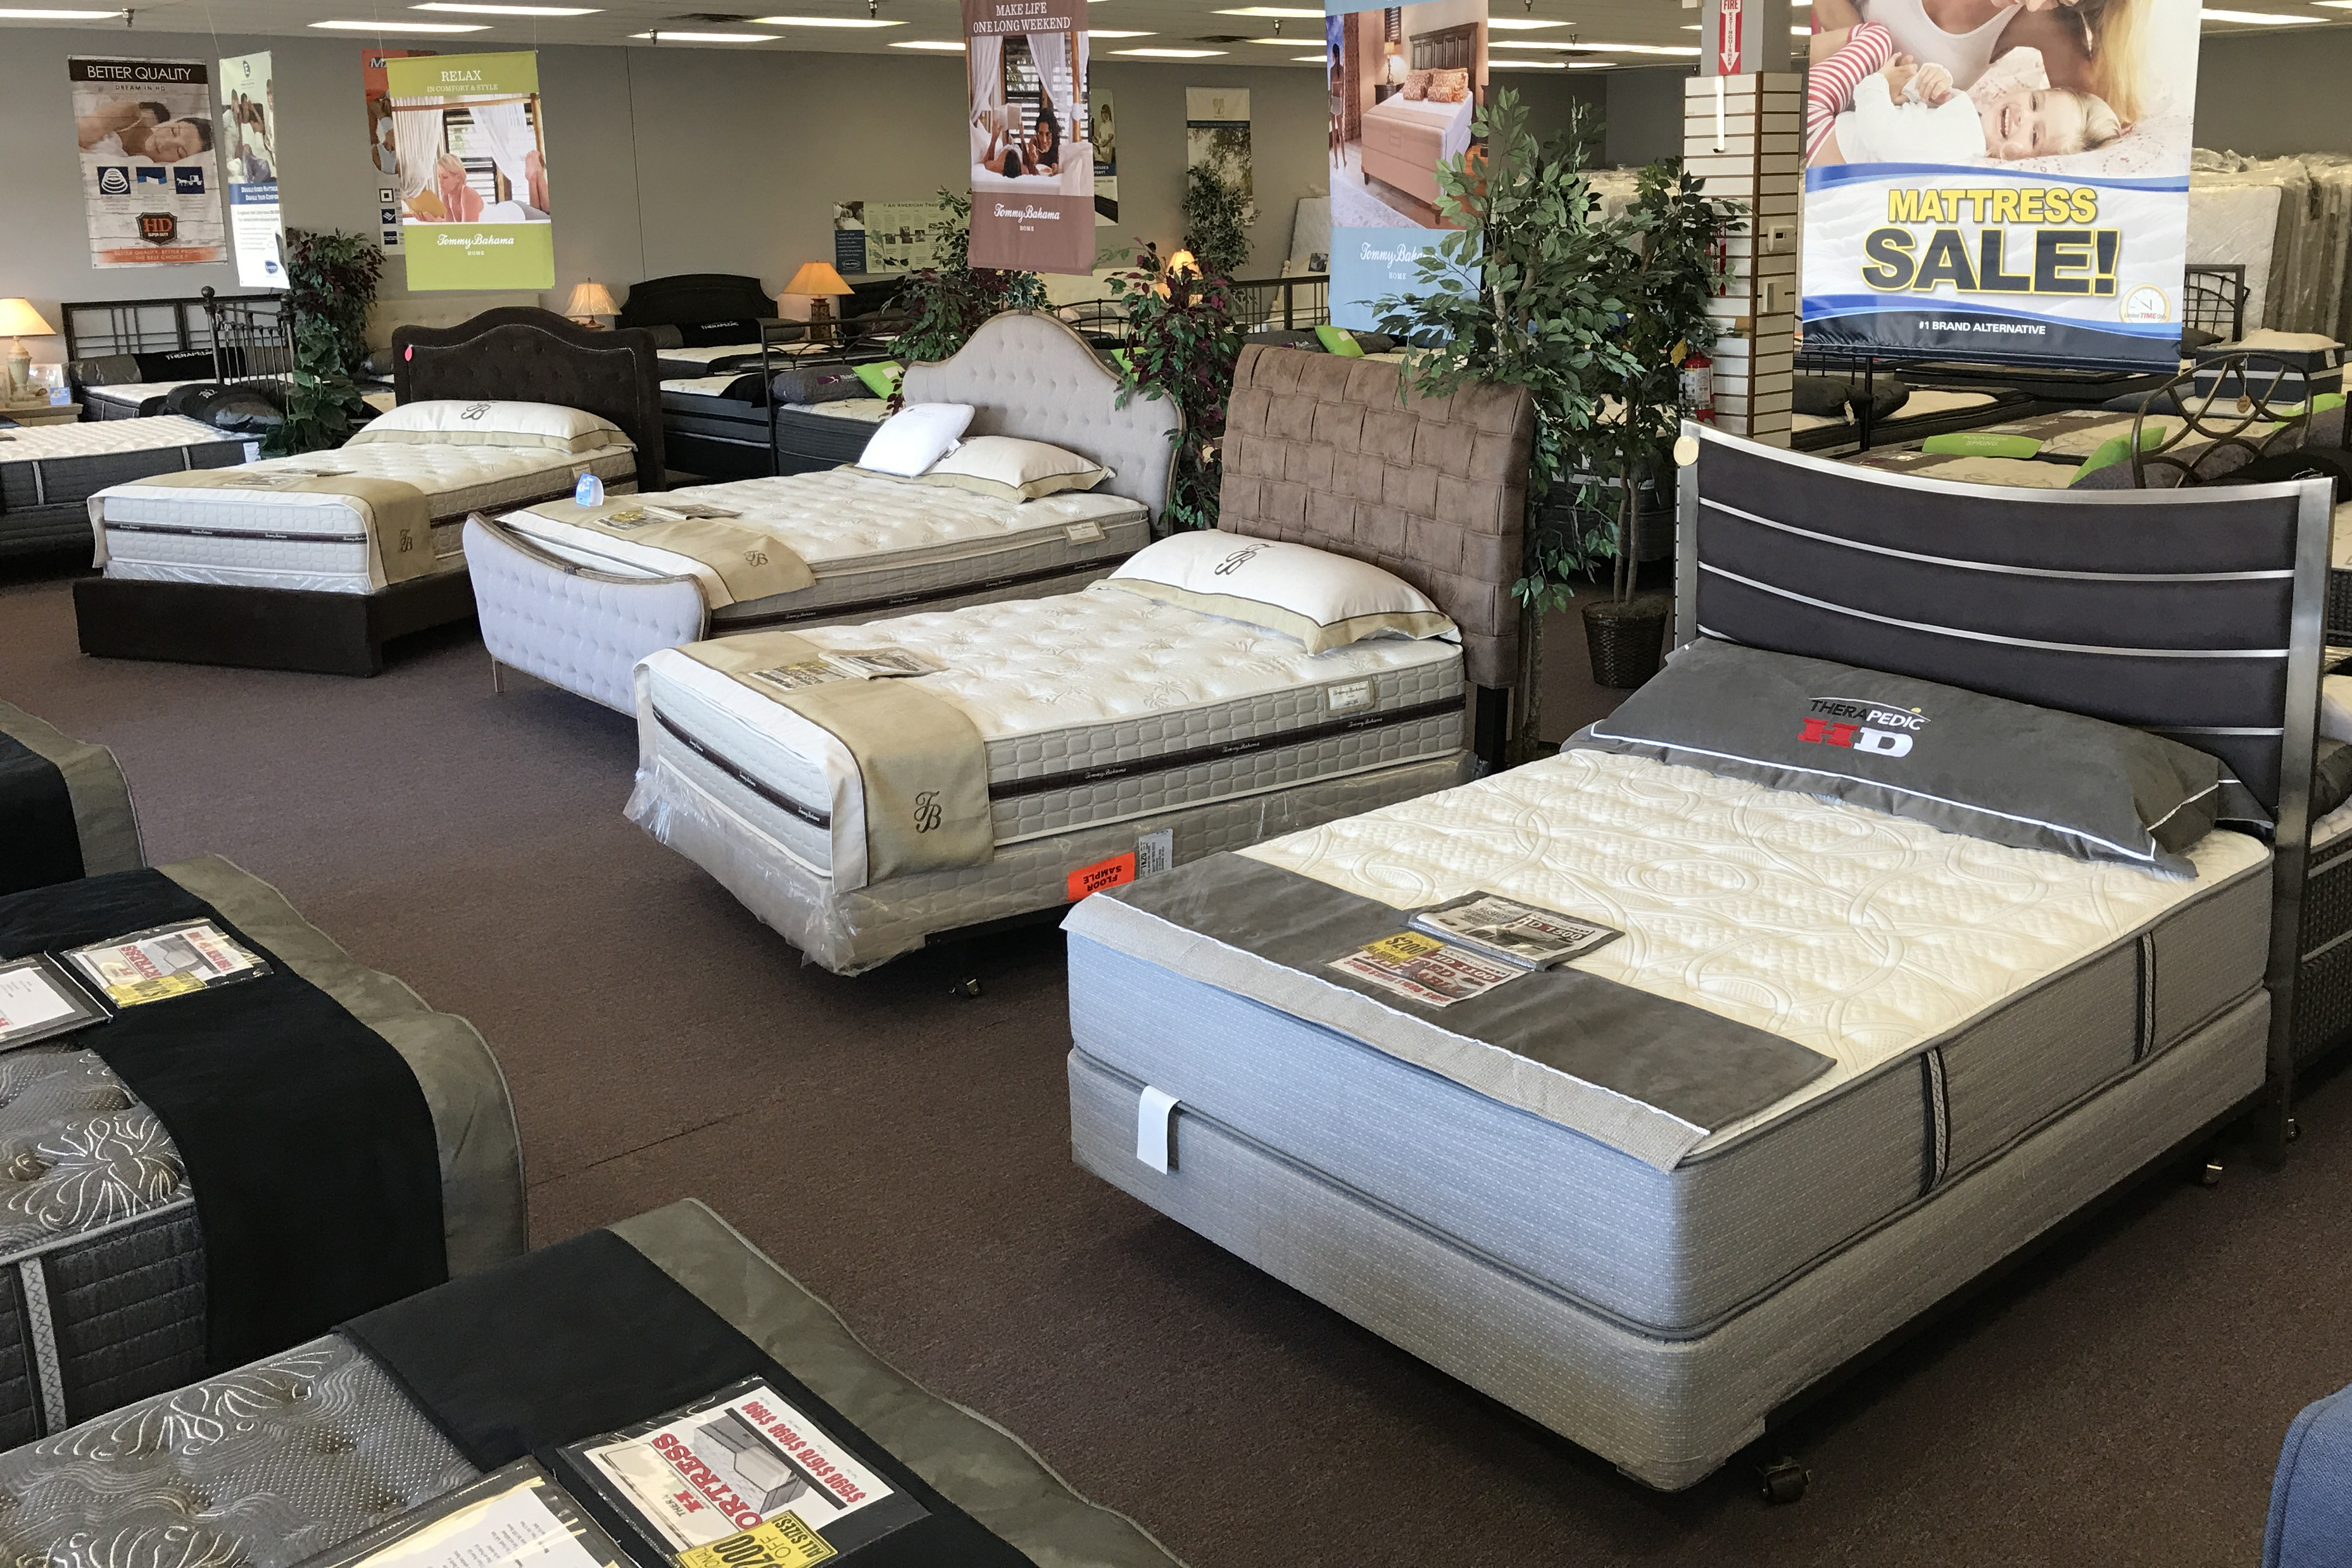 b pains fairhill time l mattress my aches stores ttr t plush r m your in the be store and morning sleep